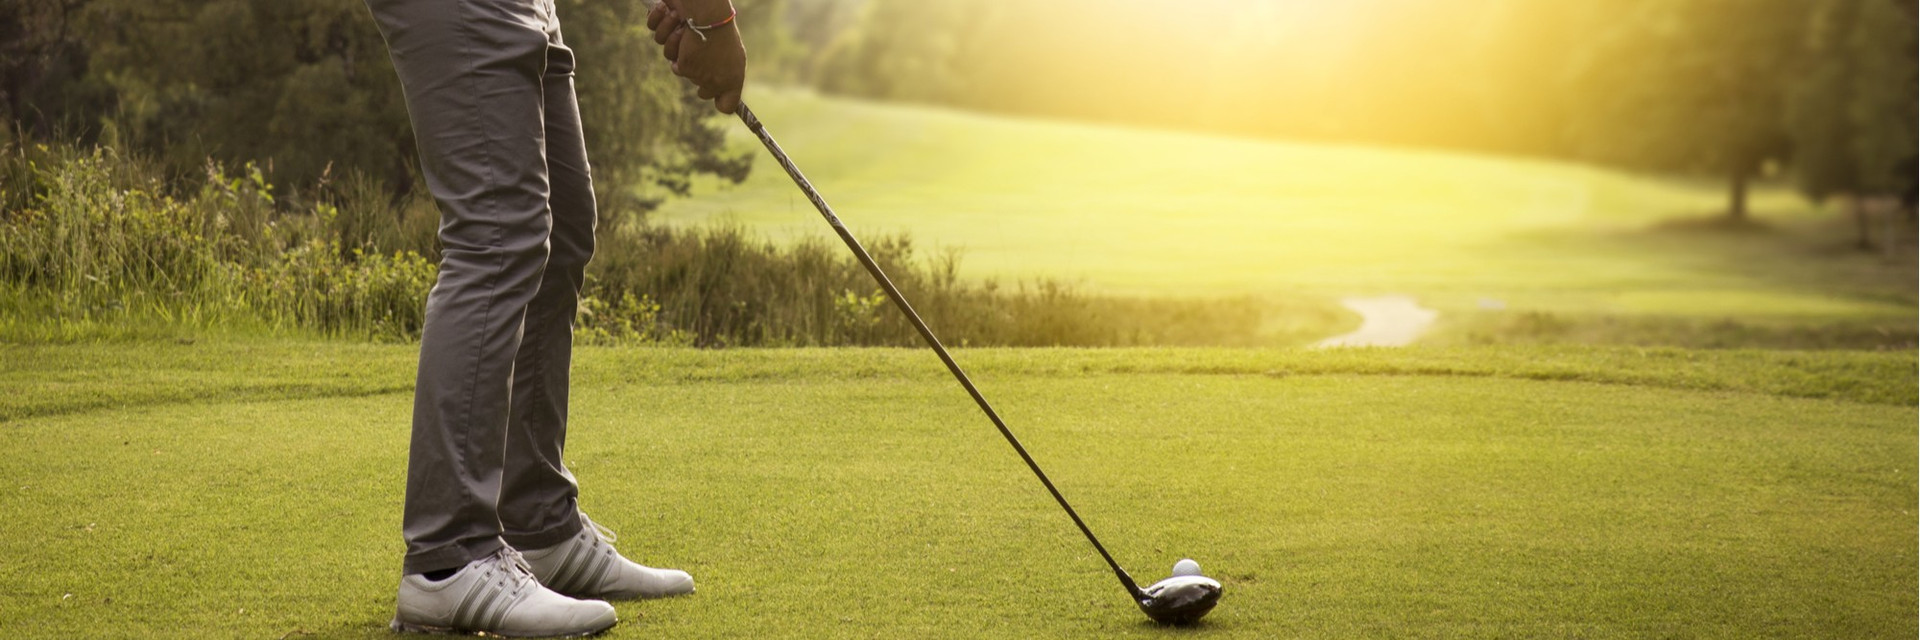 Three Treatment Options For Hip Pain From Golf | Rothman